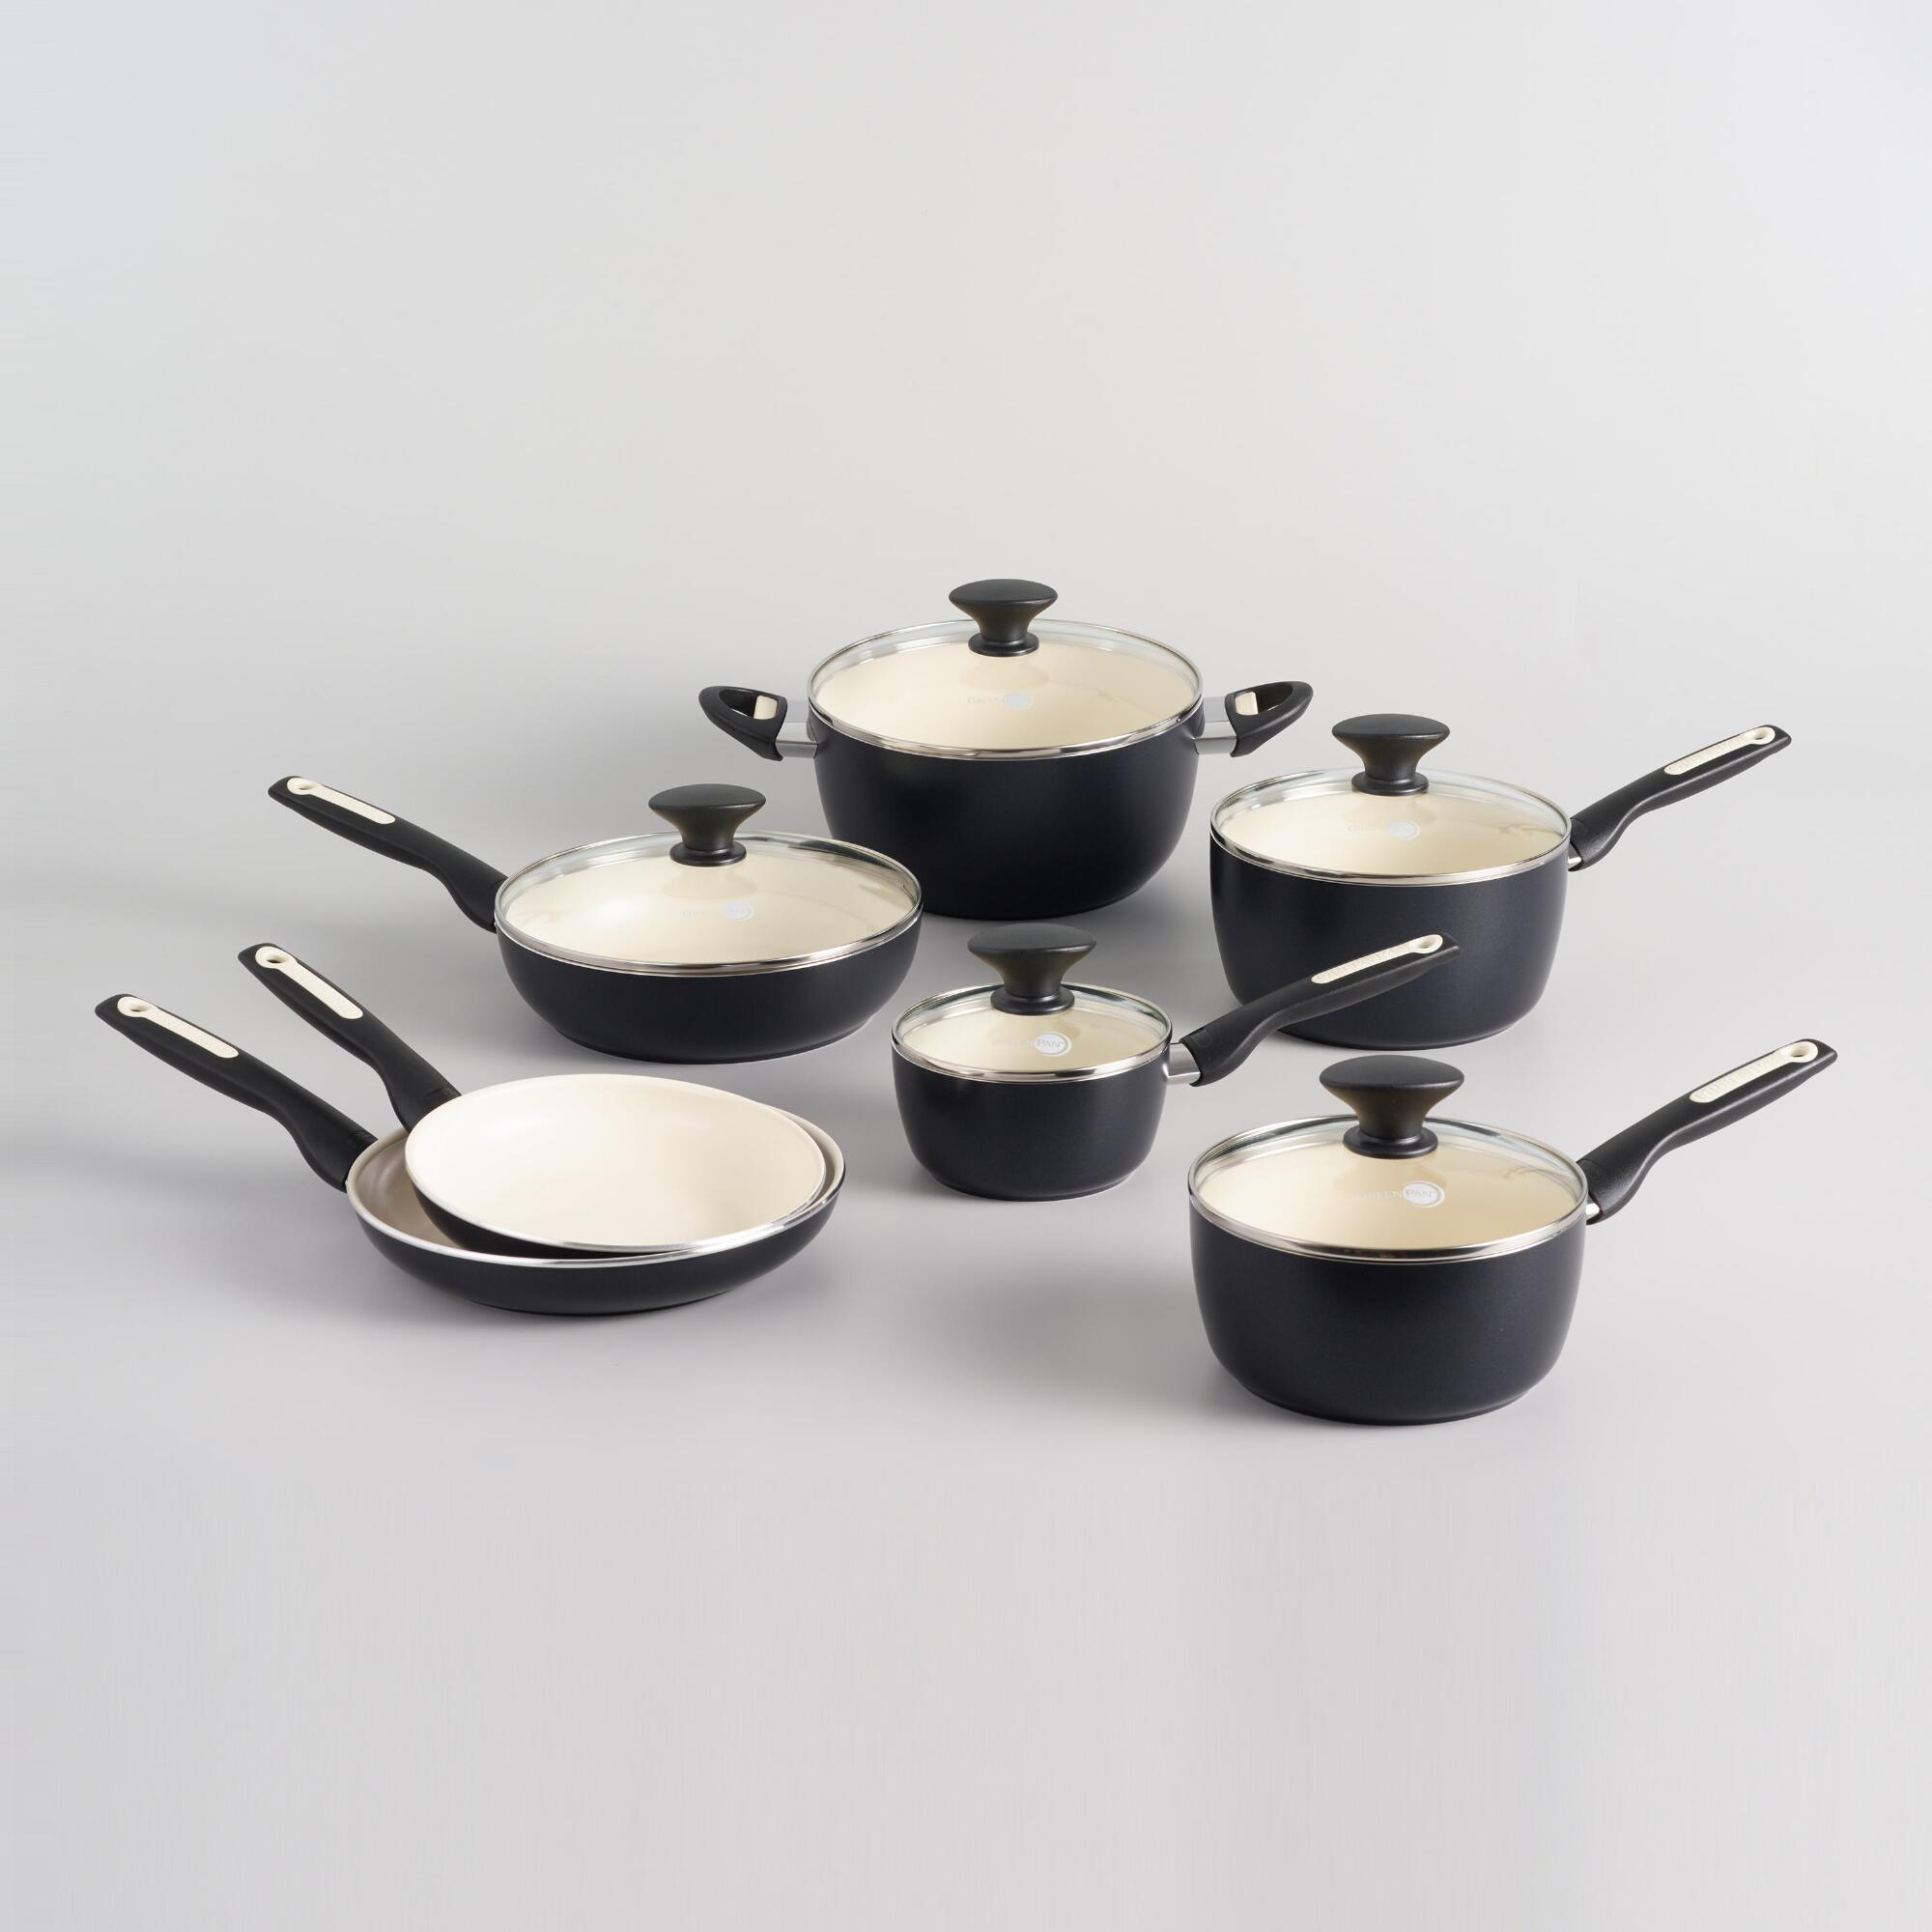 Black GreenPan Rio 12 Piece Nonstick Ceramic Cookware Set by World Market